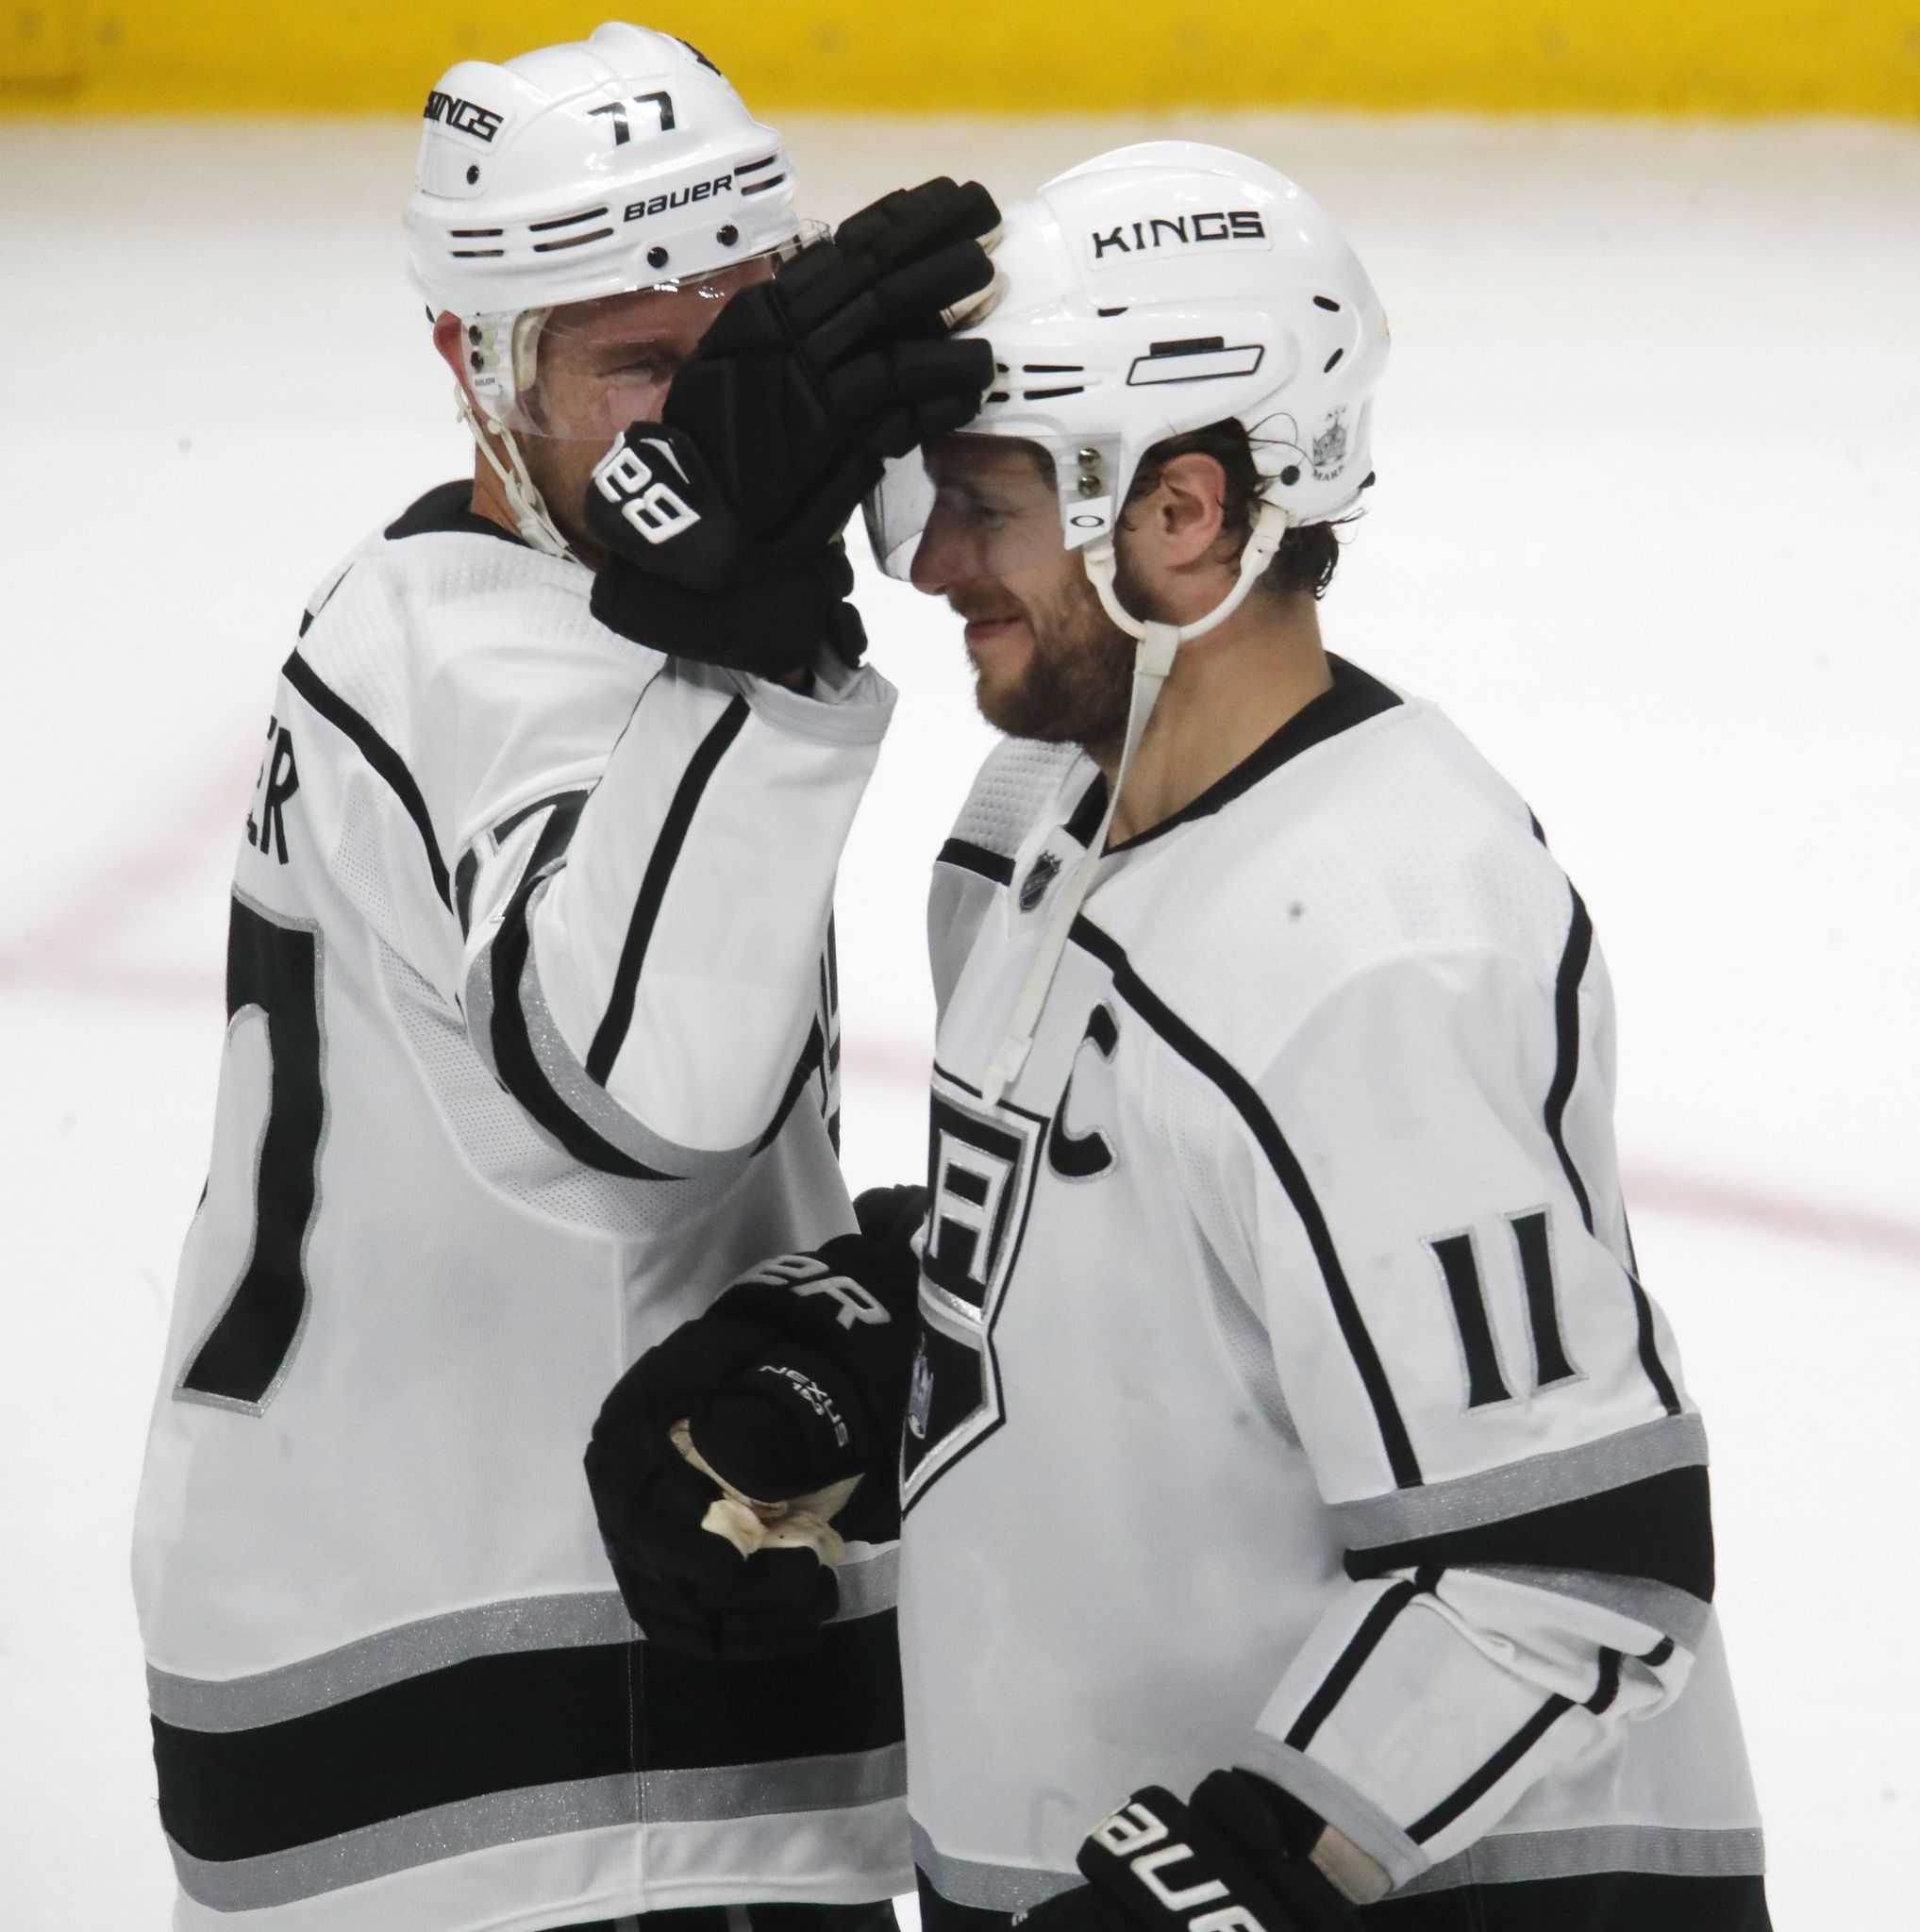 Kings_preview_hockey_74352_s2035x2048